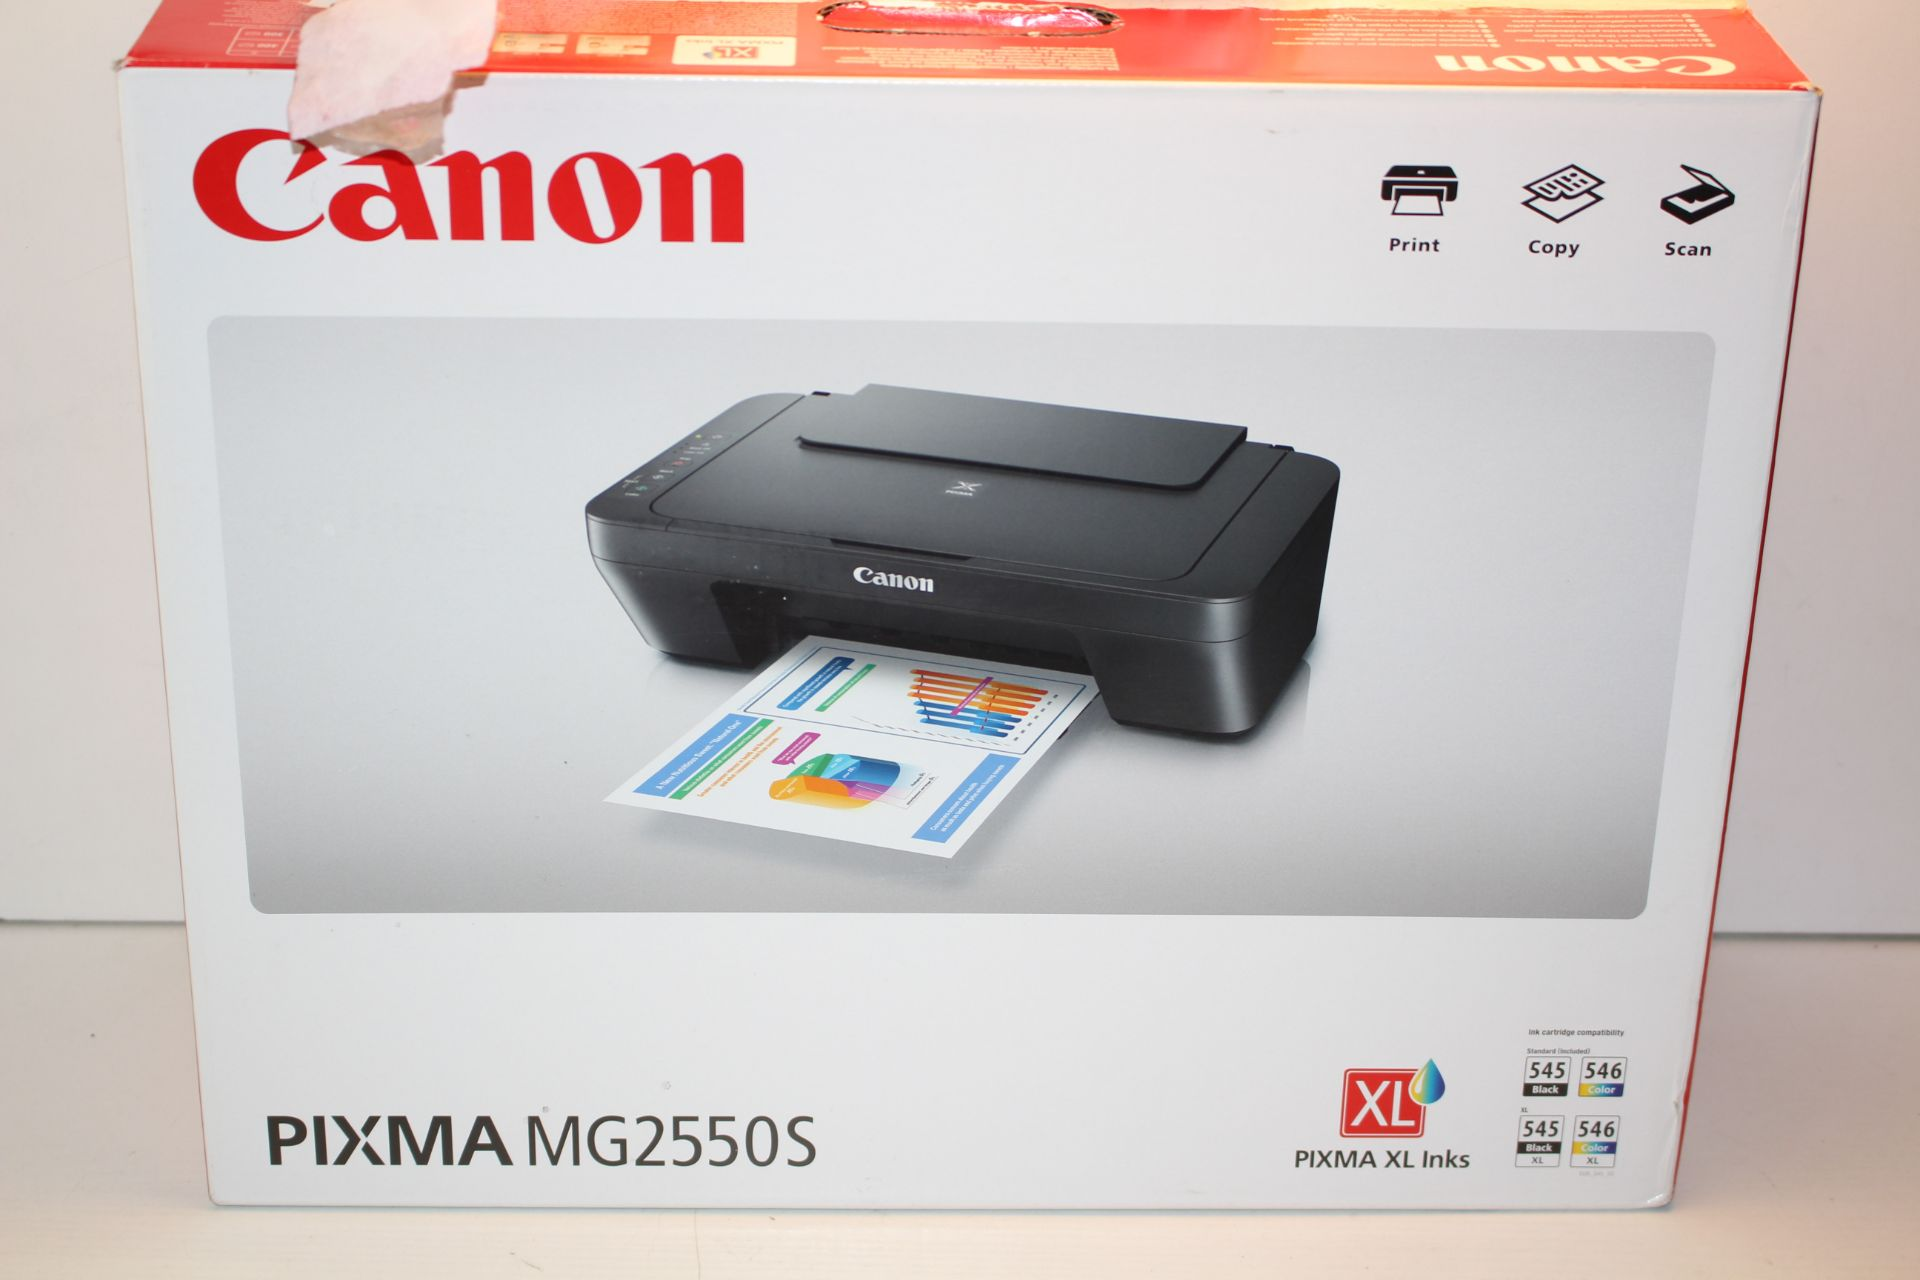 BOXED CANON PIXMA MG2550S PRINTER RRP £39.99Condition ReportAppraisal Available on Request- All